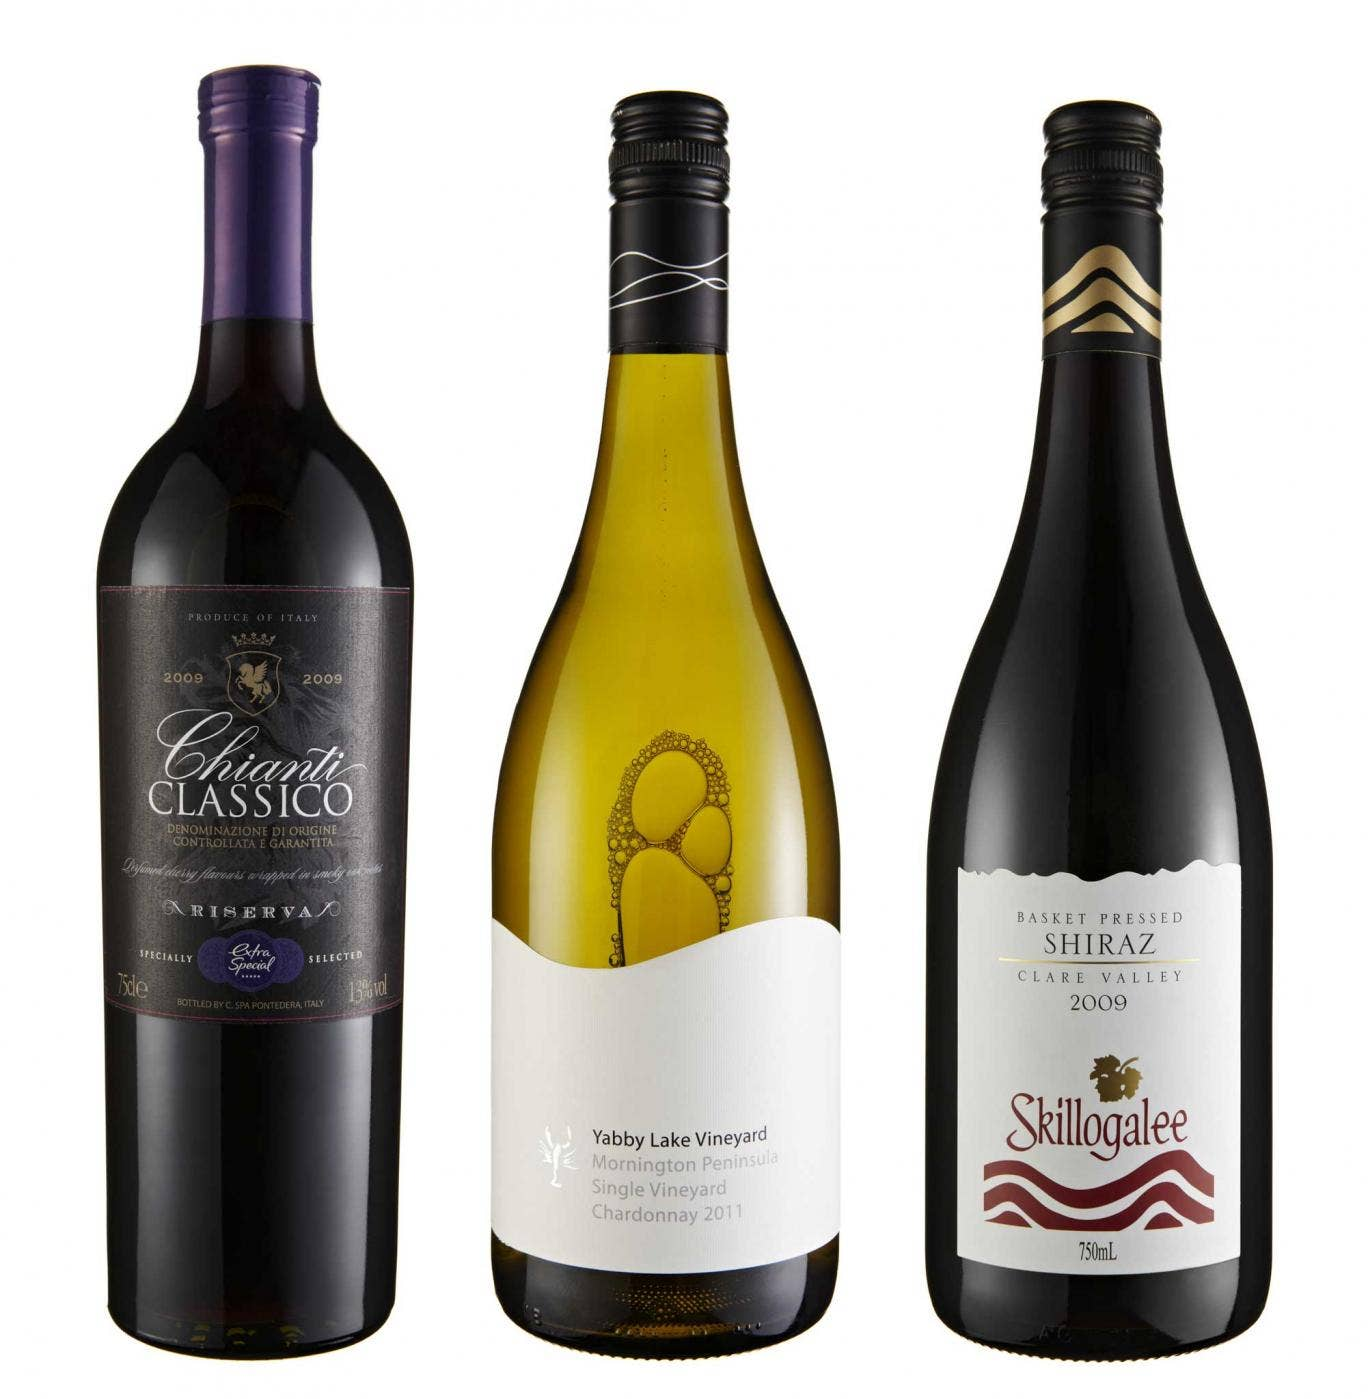 2009 Asda Extra Special Chianti Classico Riserva; 2011 Yabby Lake Single Vineyard Chardonnay; 2009 Skilogalee Basket Pressed Shiraz, Clare Valley